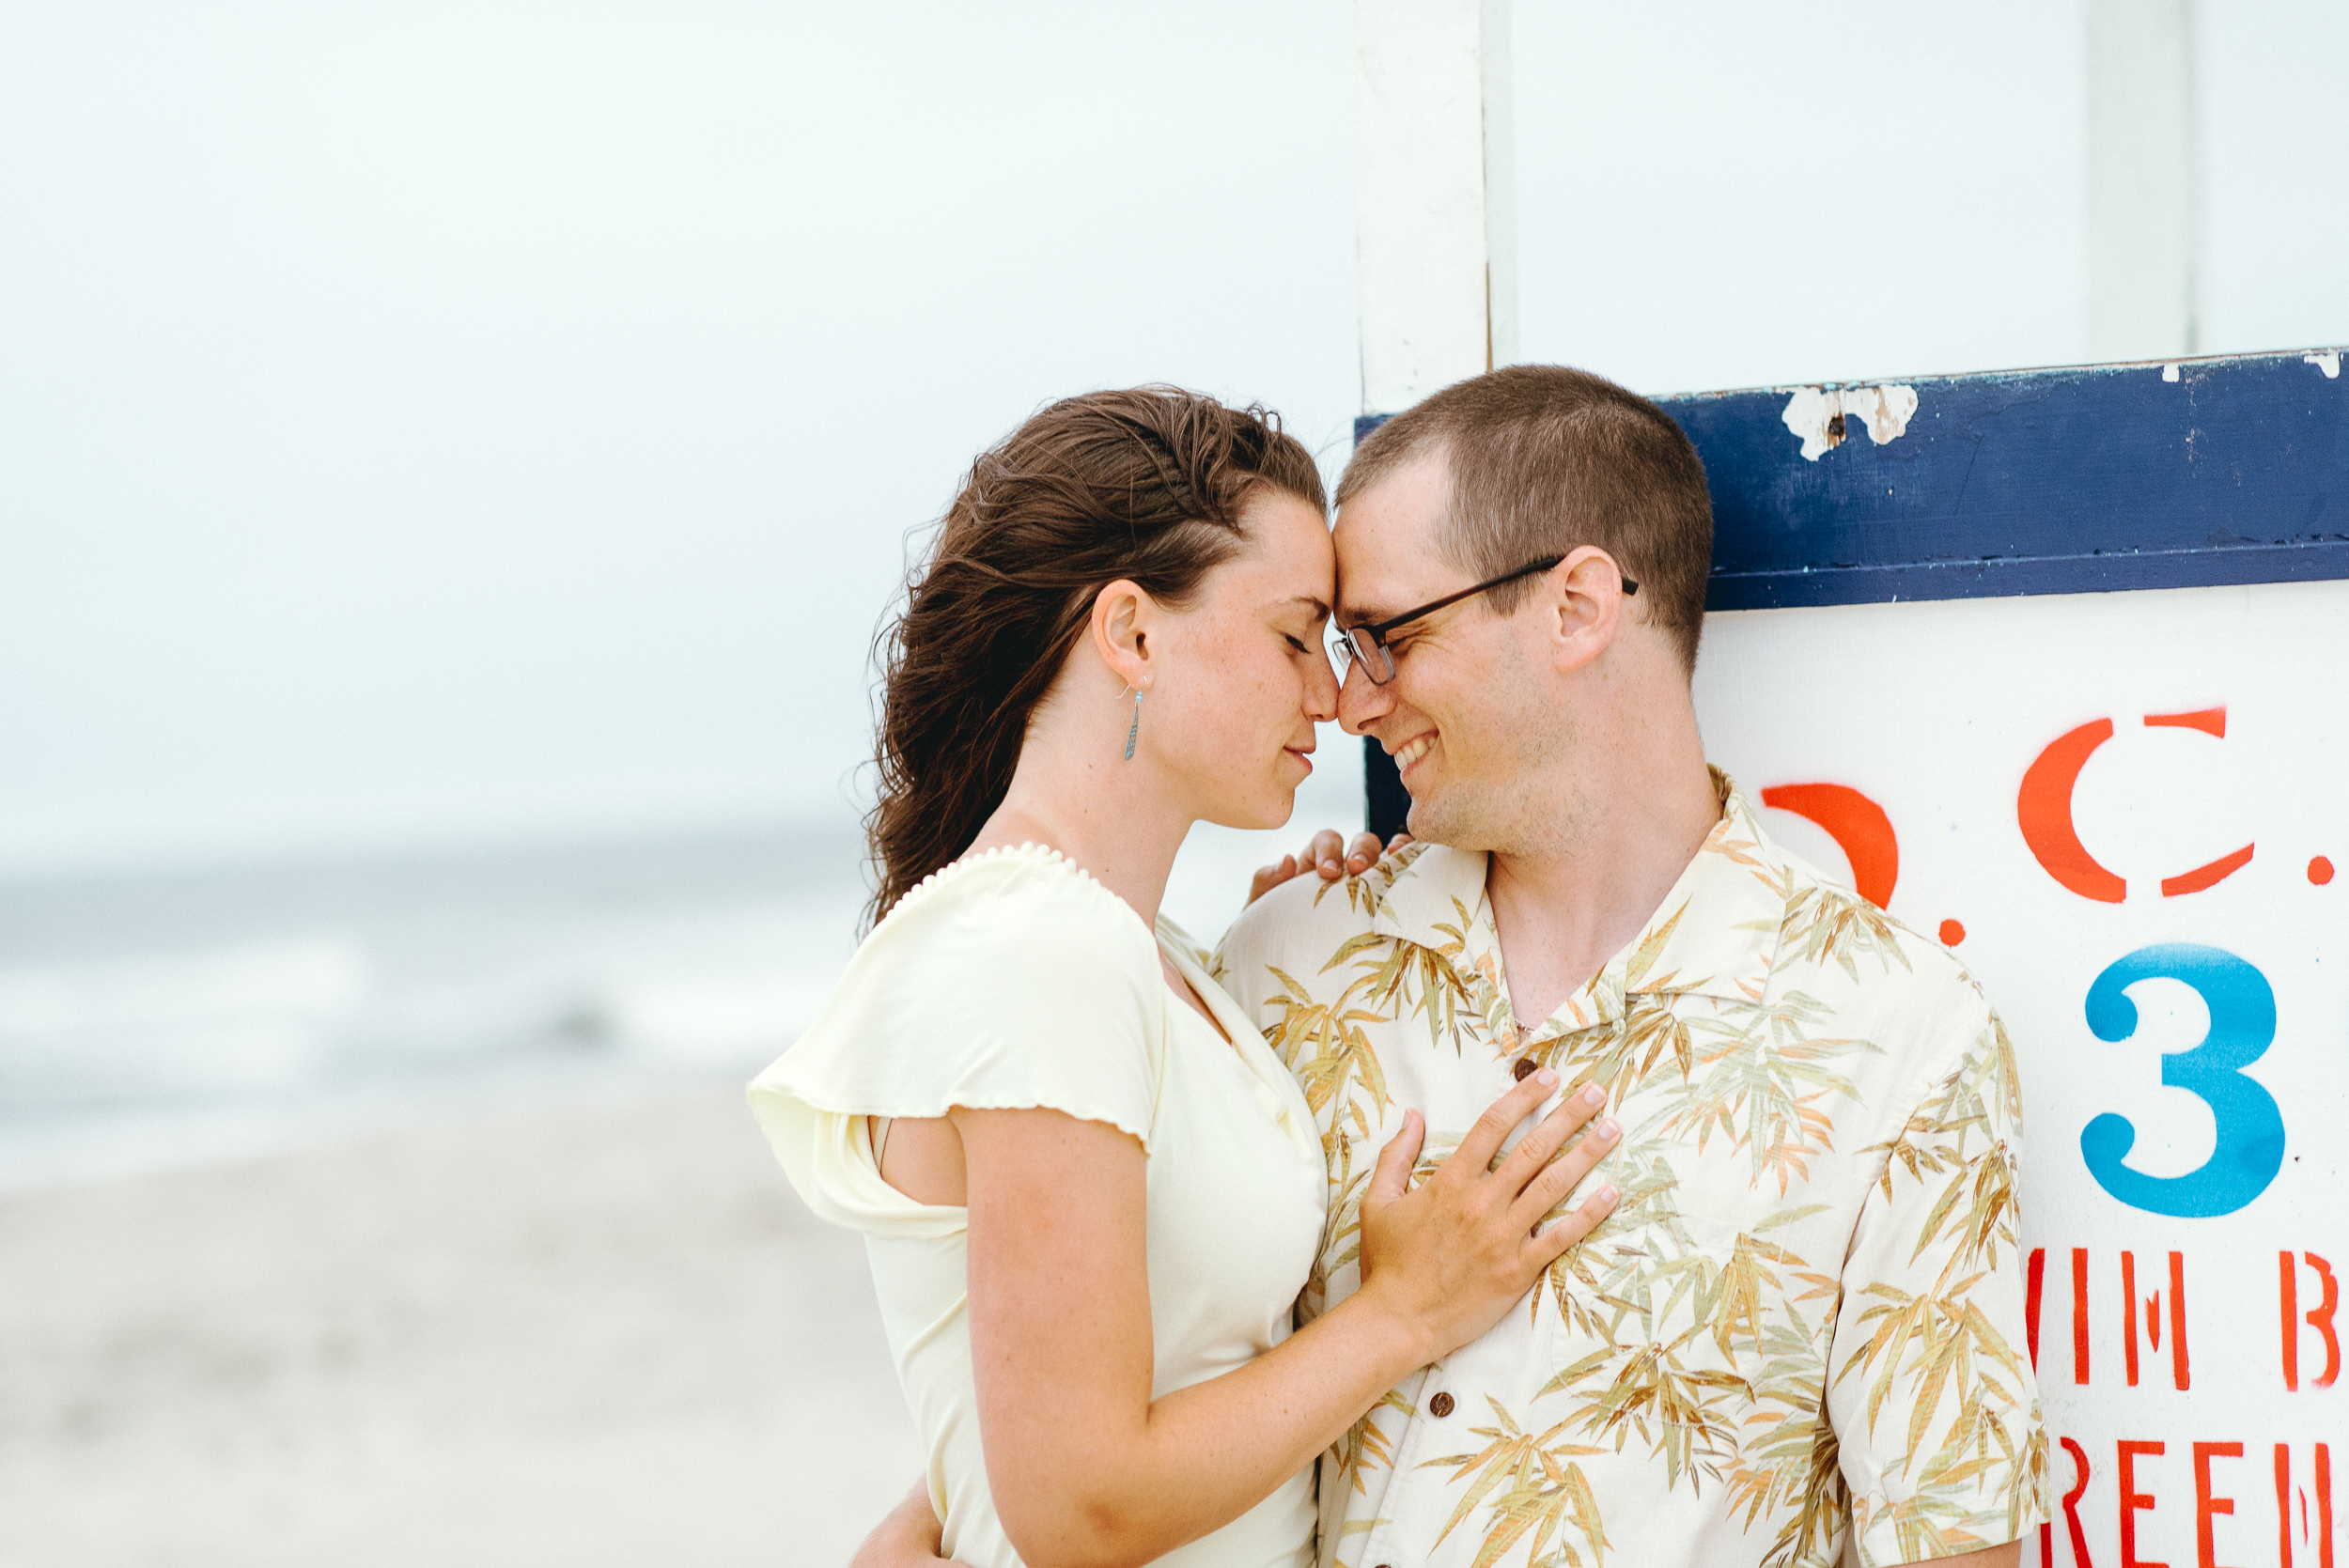 Ocean-City-New-Jersey- Beach-Engagemnt-Peaberry-Photography-Philadelphia-Wedding-Photographer-022.jpg